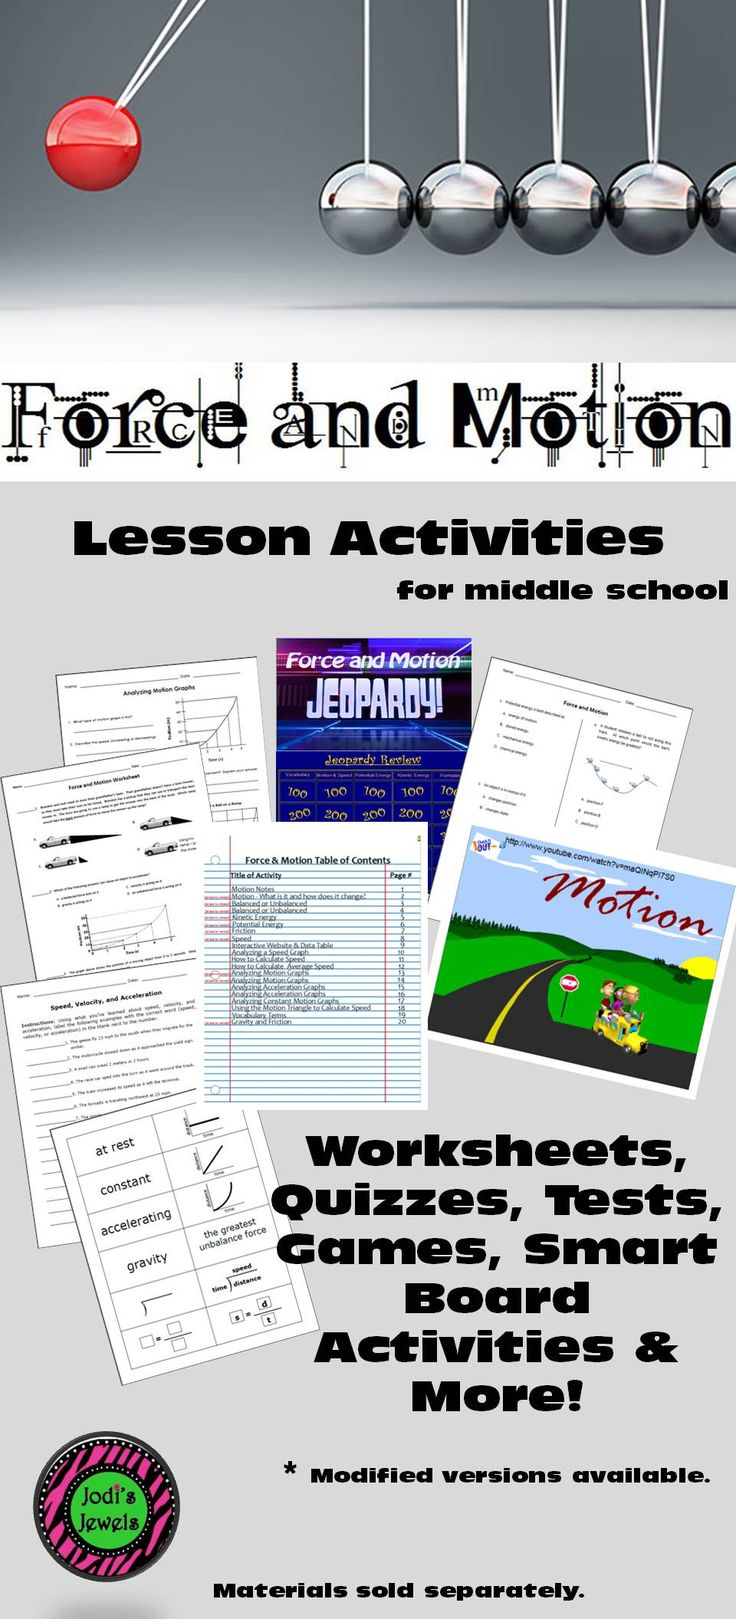 Force and Motion activities/unit ideas for middle school students. Worksheets, quizzes, tests, games, Smart Board activities, and more. Add to your unit today! Visit Jodi's Jewels